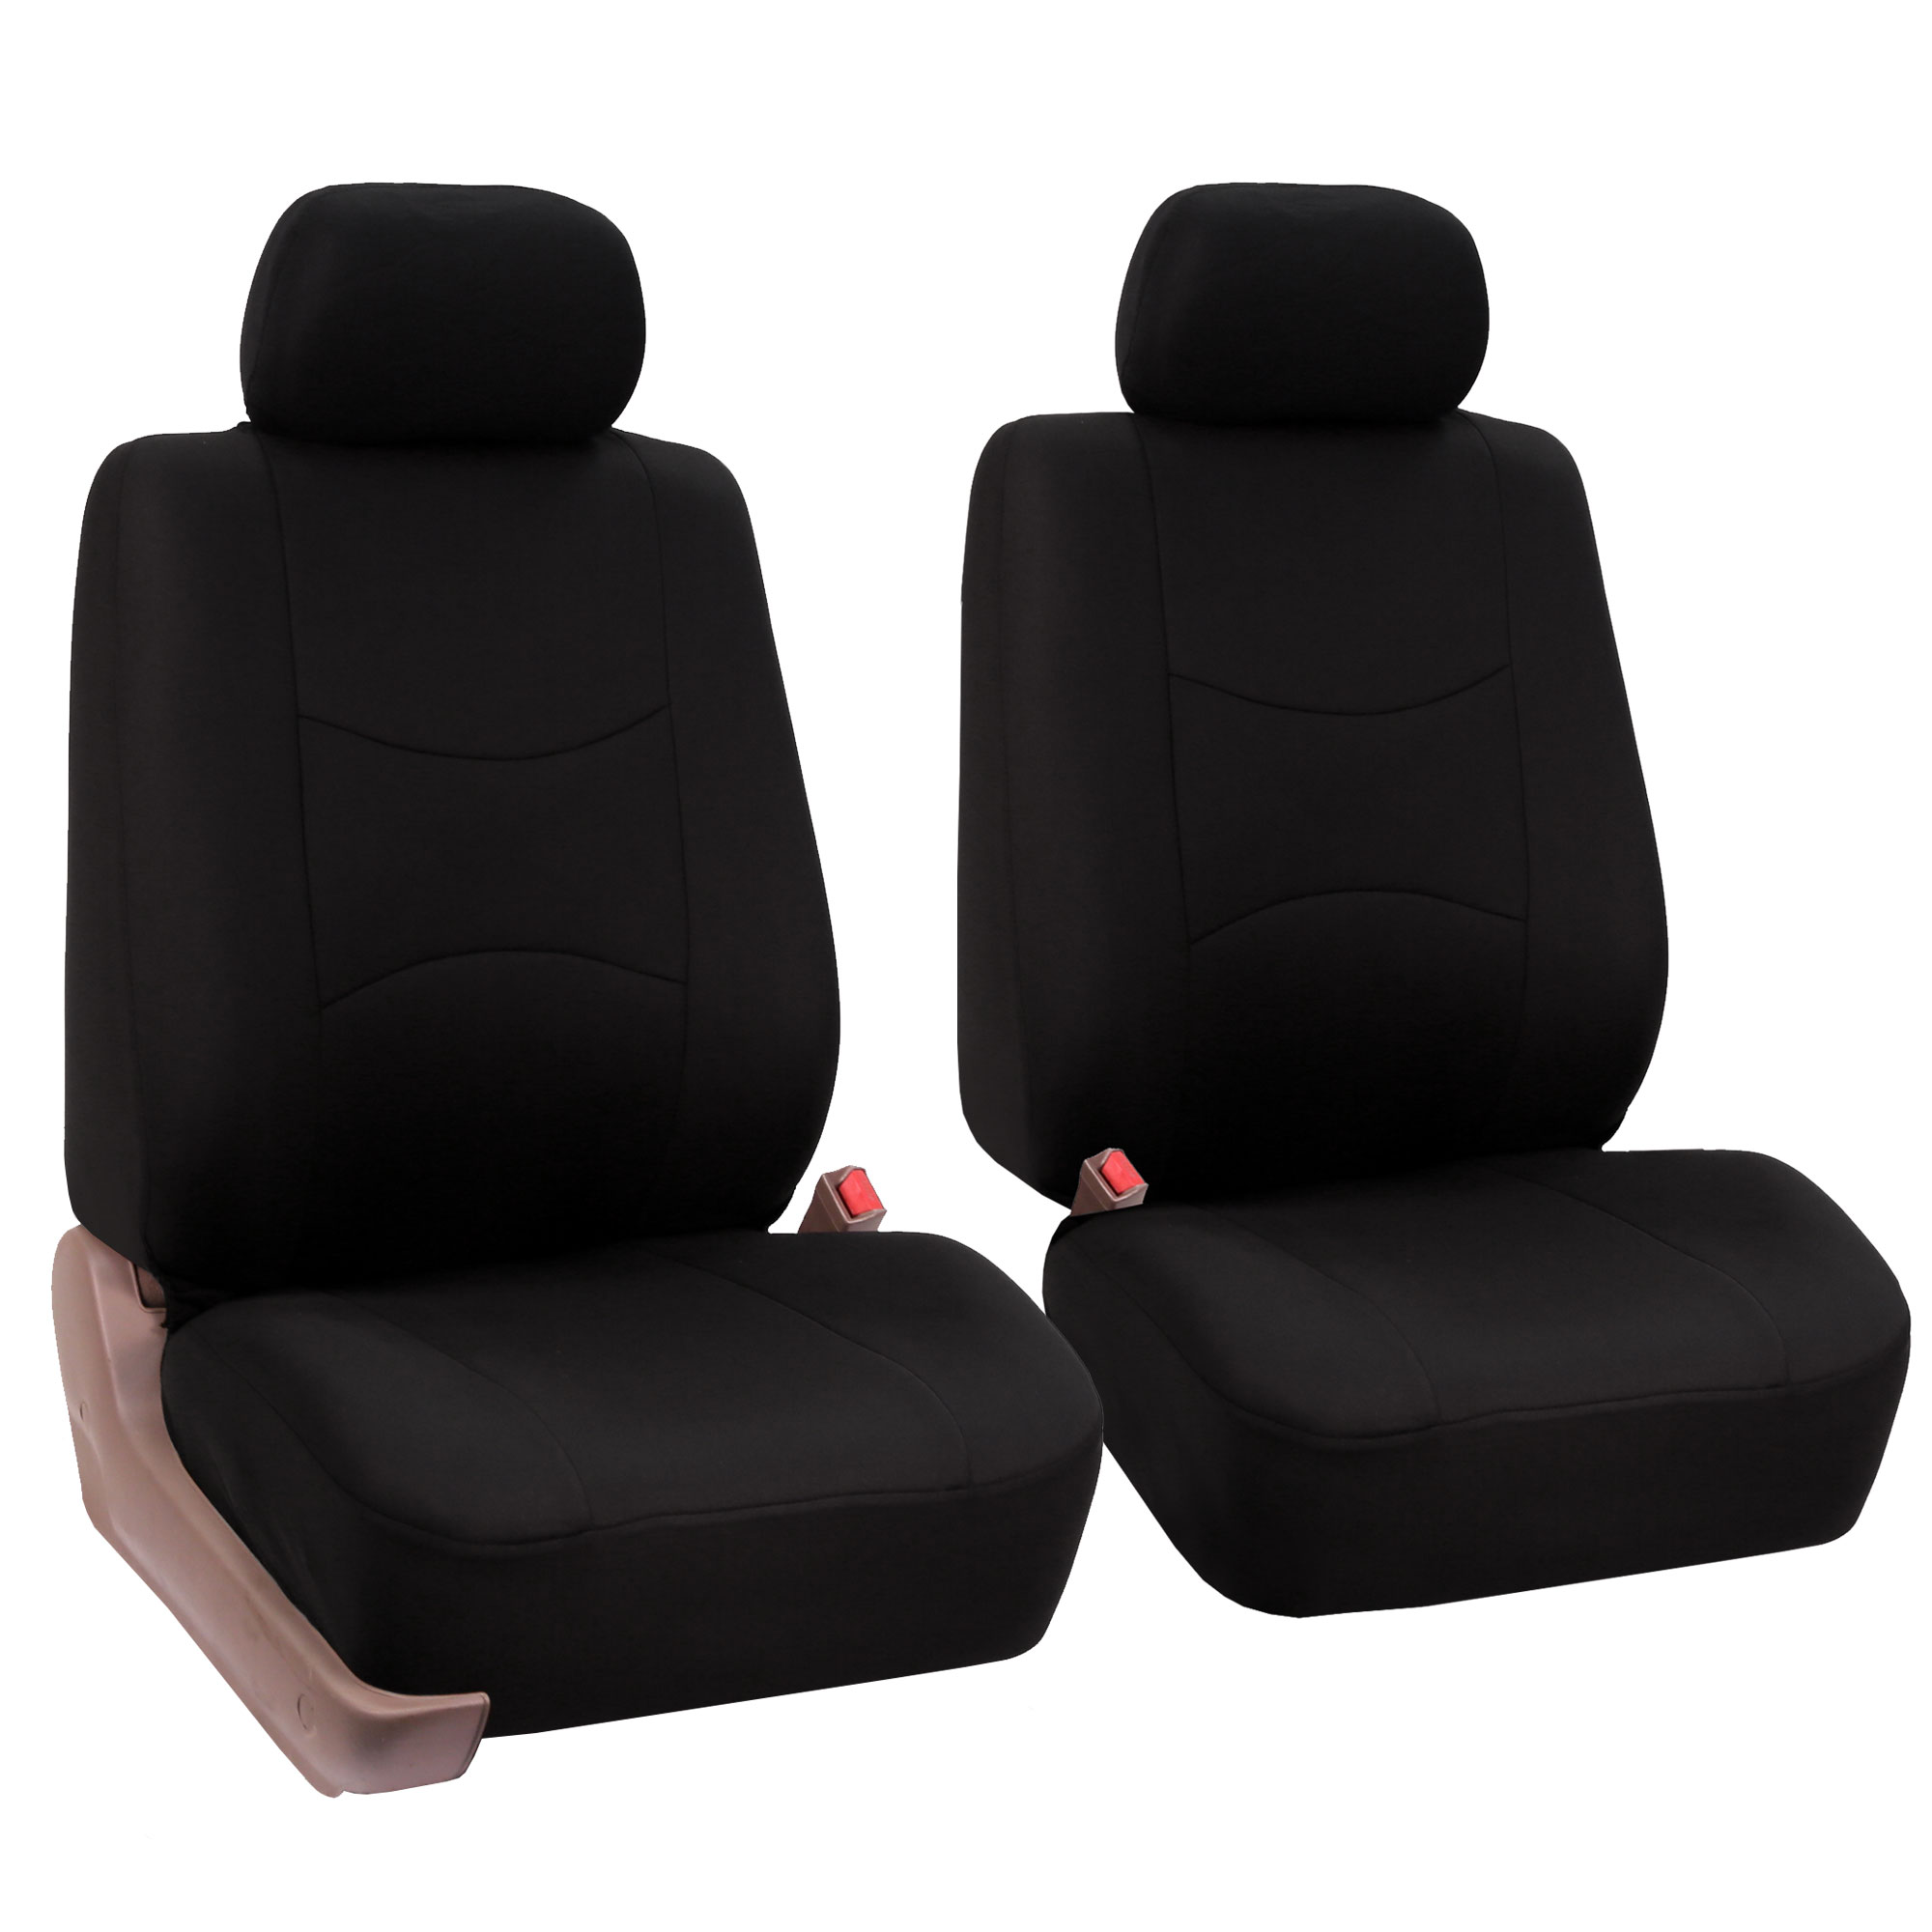 chair seat cover fabric 8 table pair bucket covers for detachable headrest